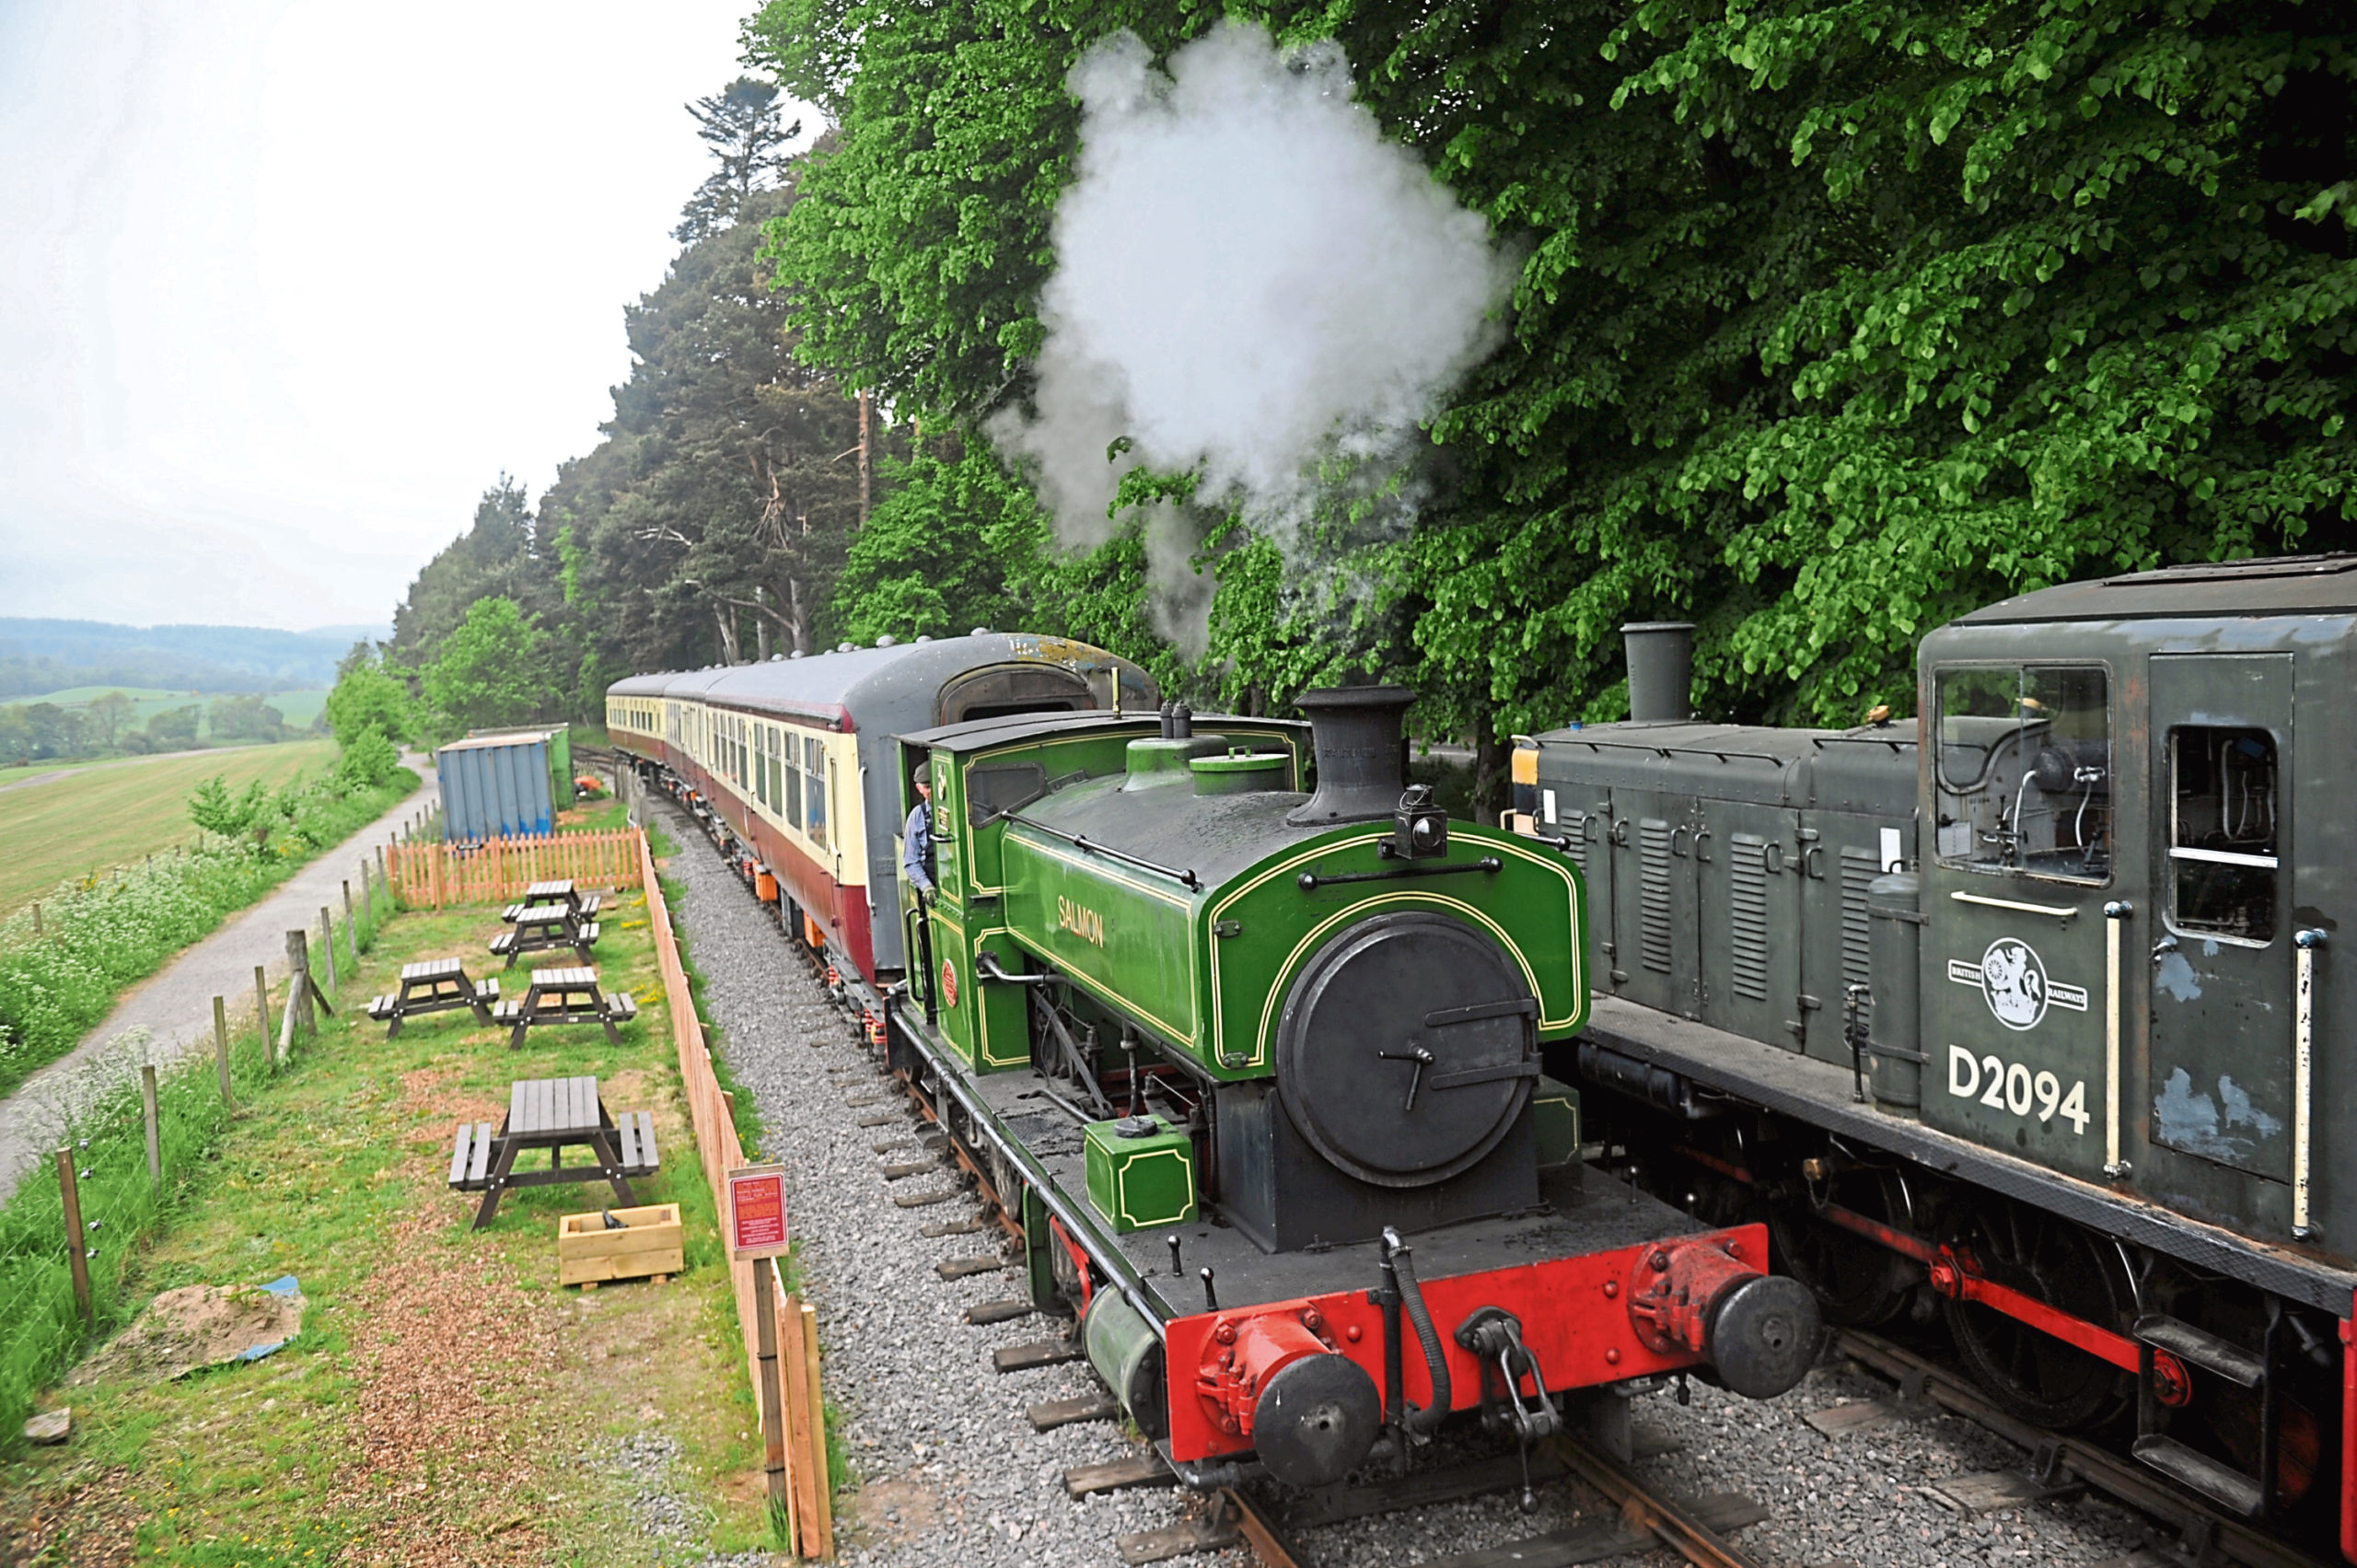 The Royal Deeside Railway Preservation Society has reached its funding goal for a new bridge.